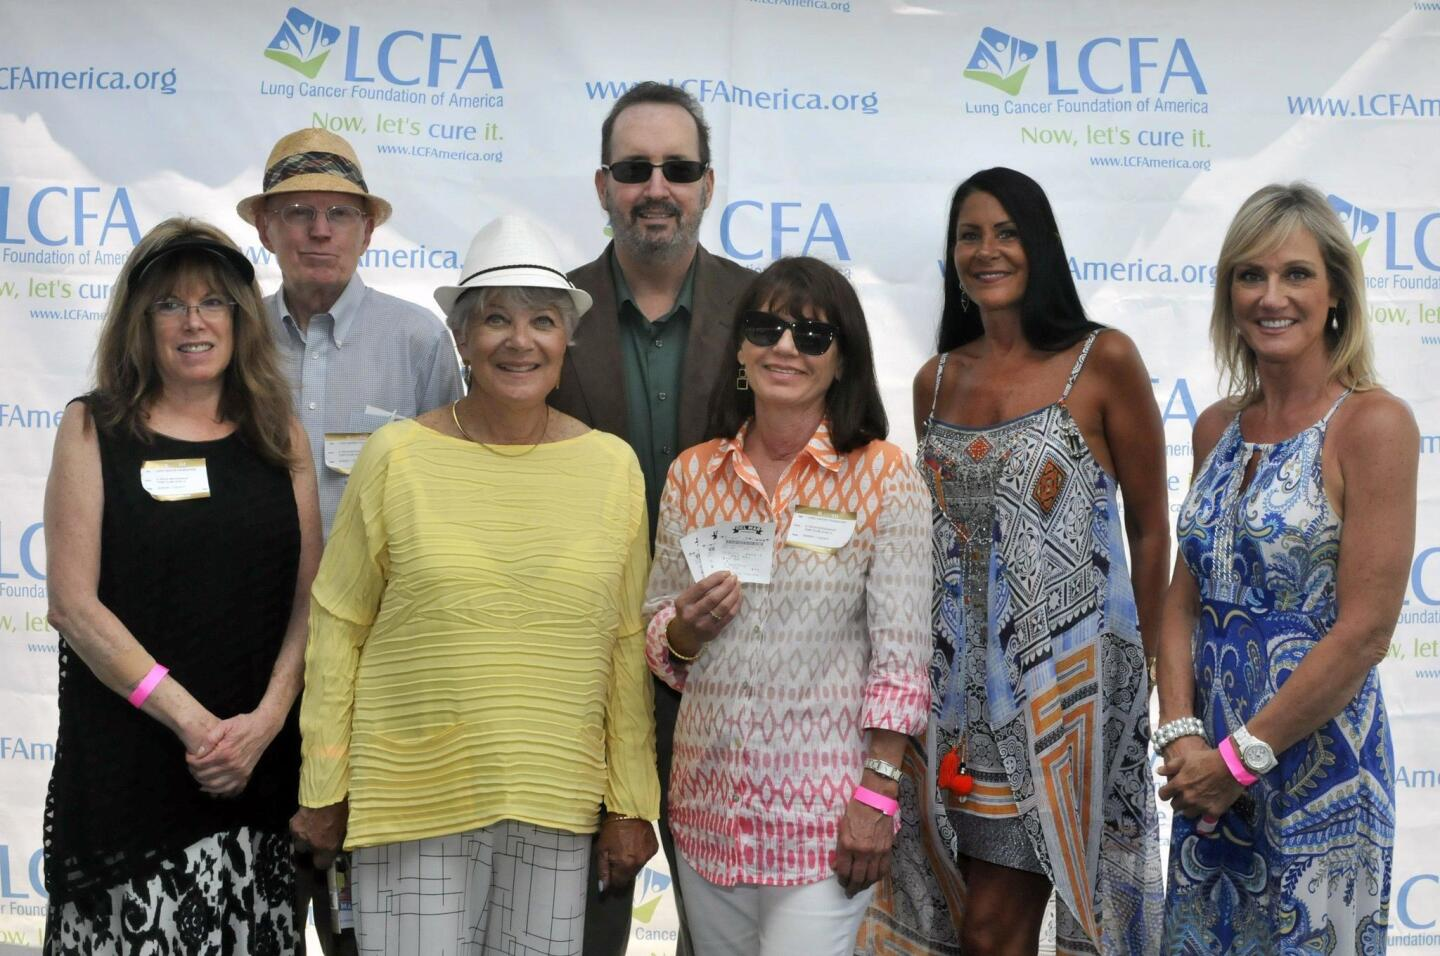 Lung cancer survivors Suzanne Morrison, Al Silliman, Michael Weitz, Paula Friendly, Sharon Fisher, Carolyn Zainer, Cynthia Purcell